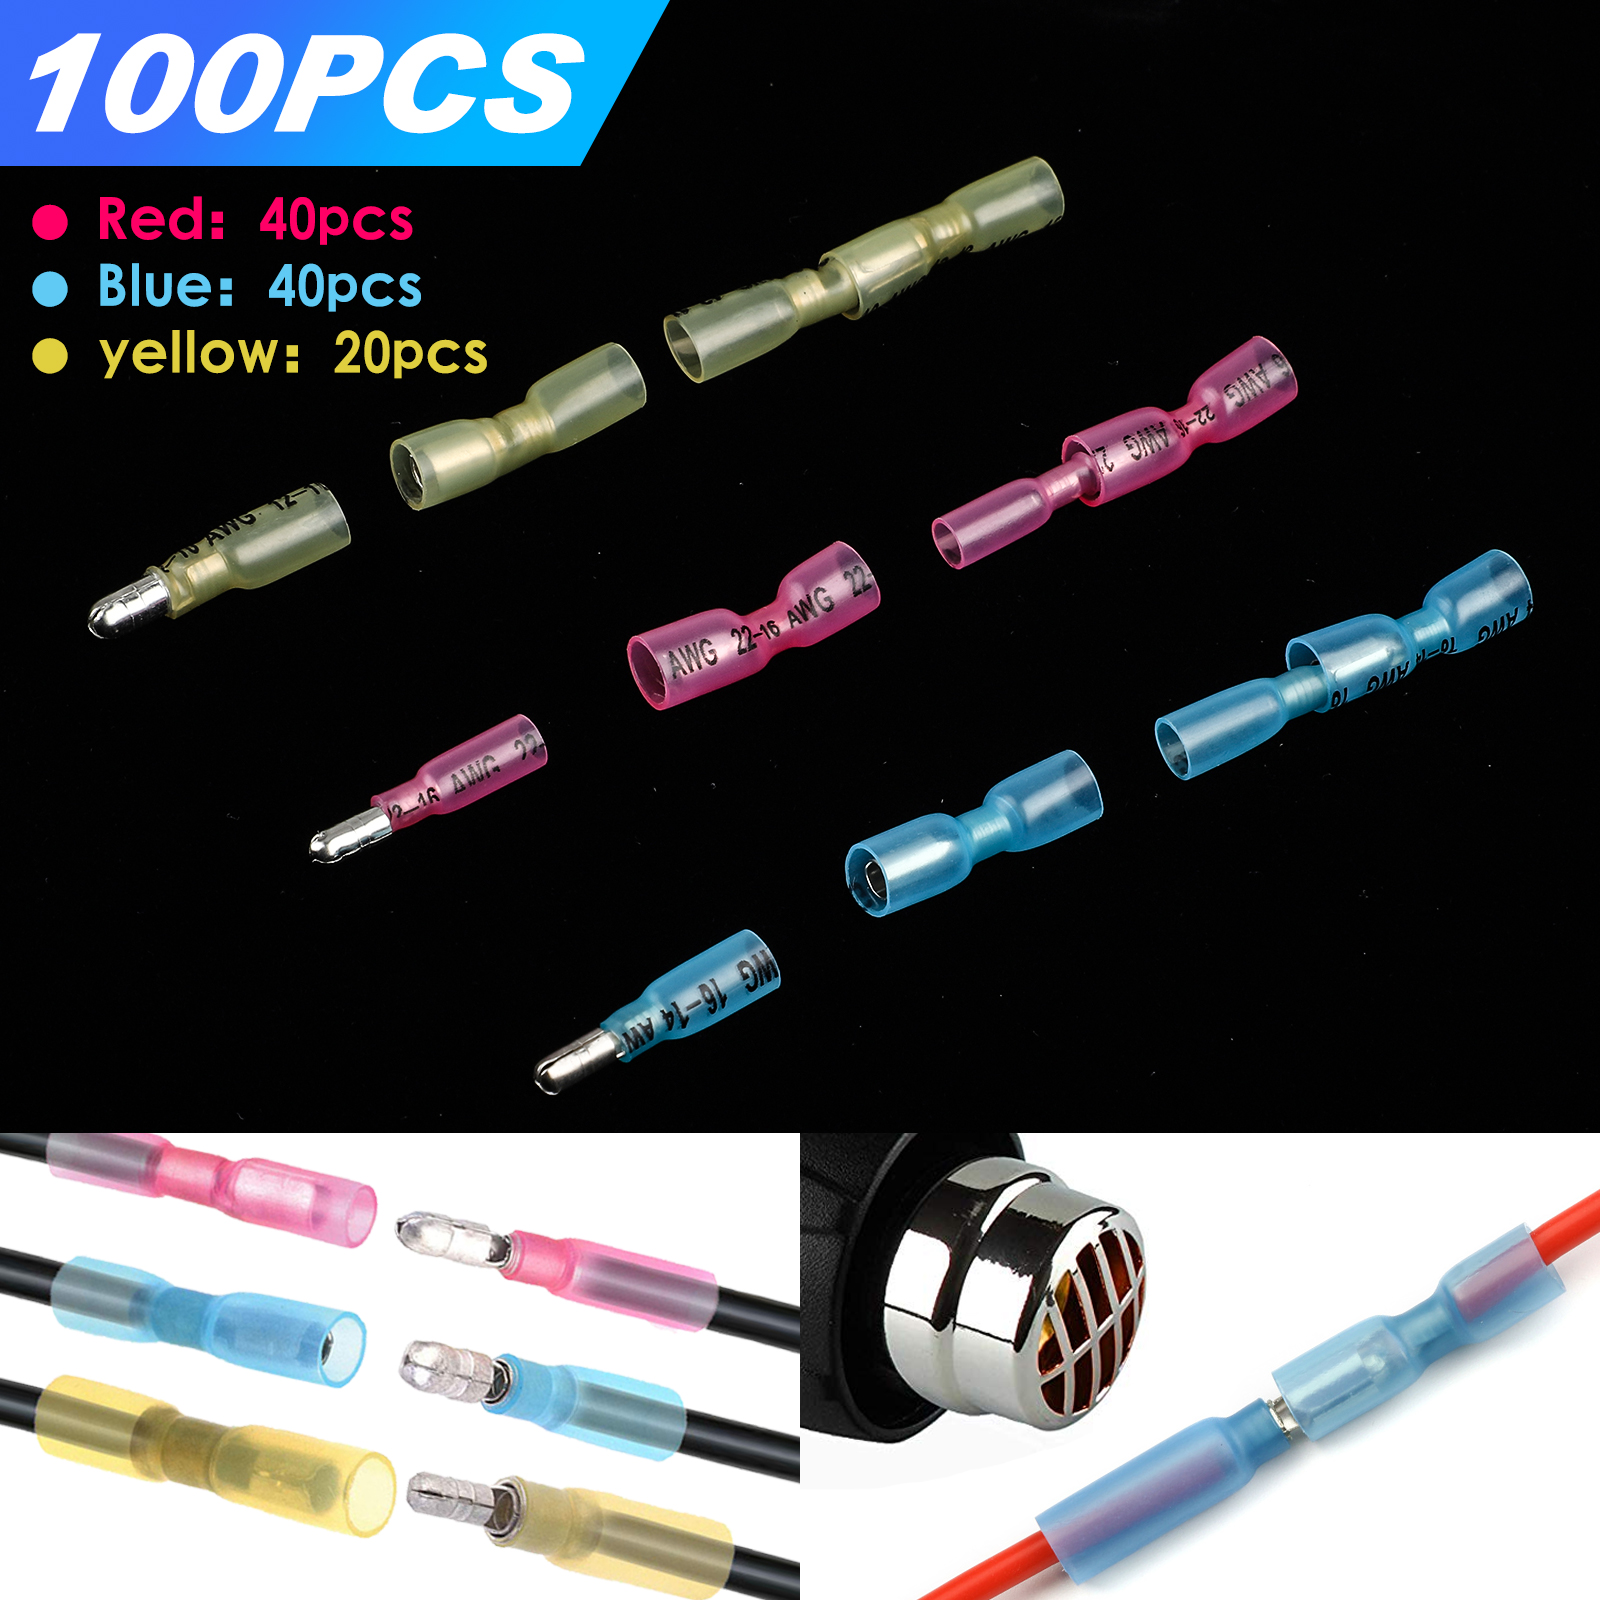 Blue 100pcs Male And Female Bullet Connectors Insulated Wire Crimp Terminals